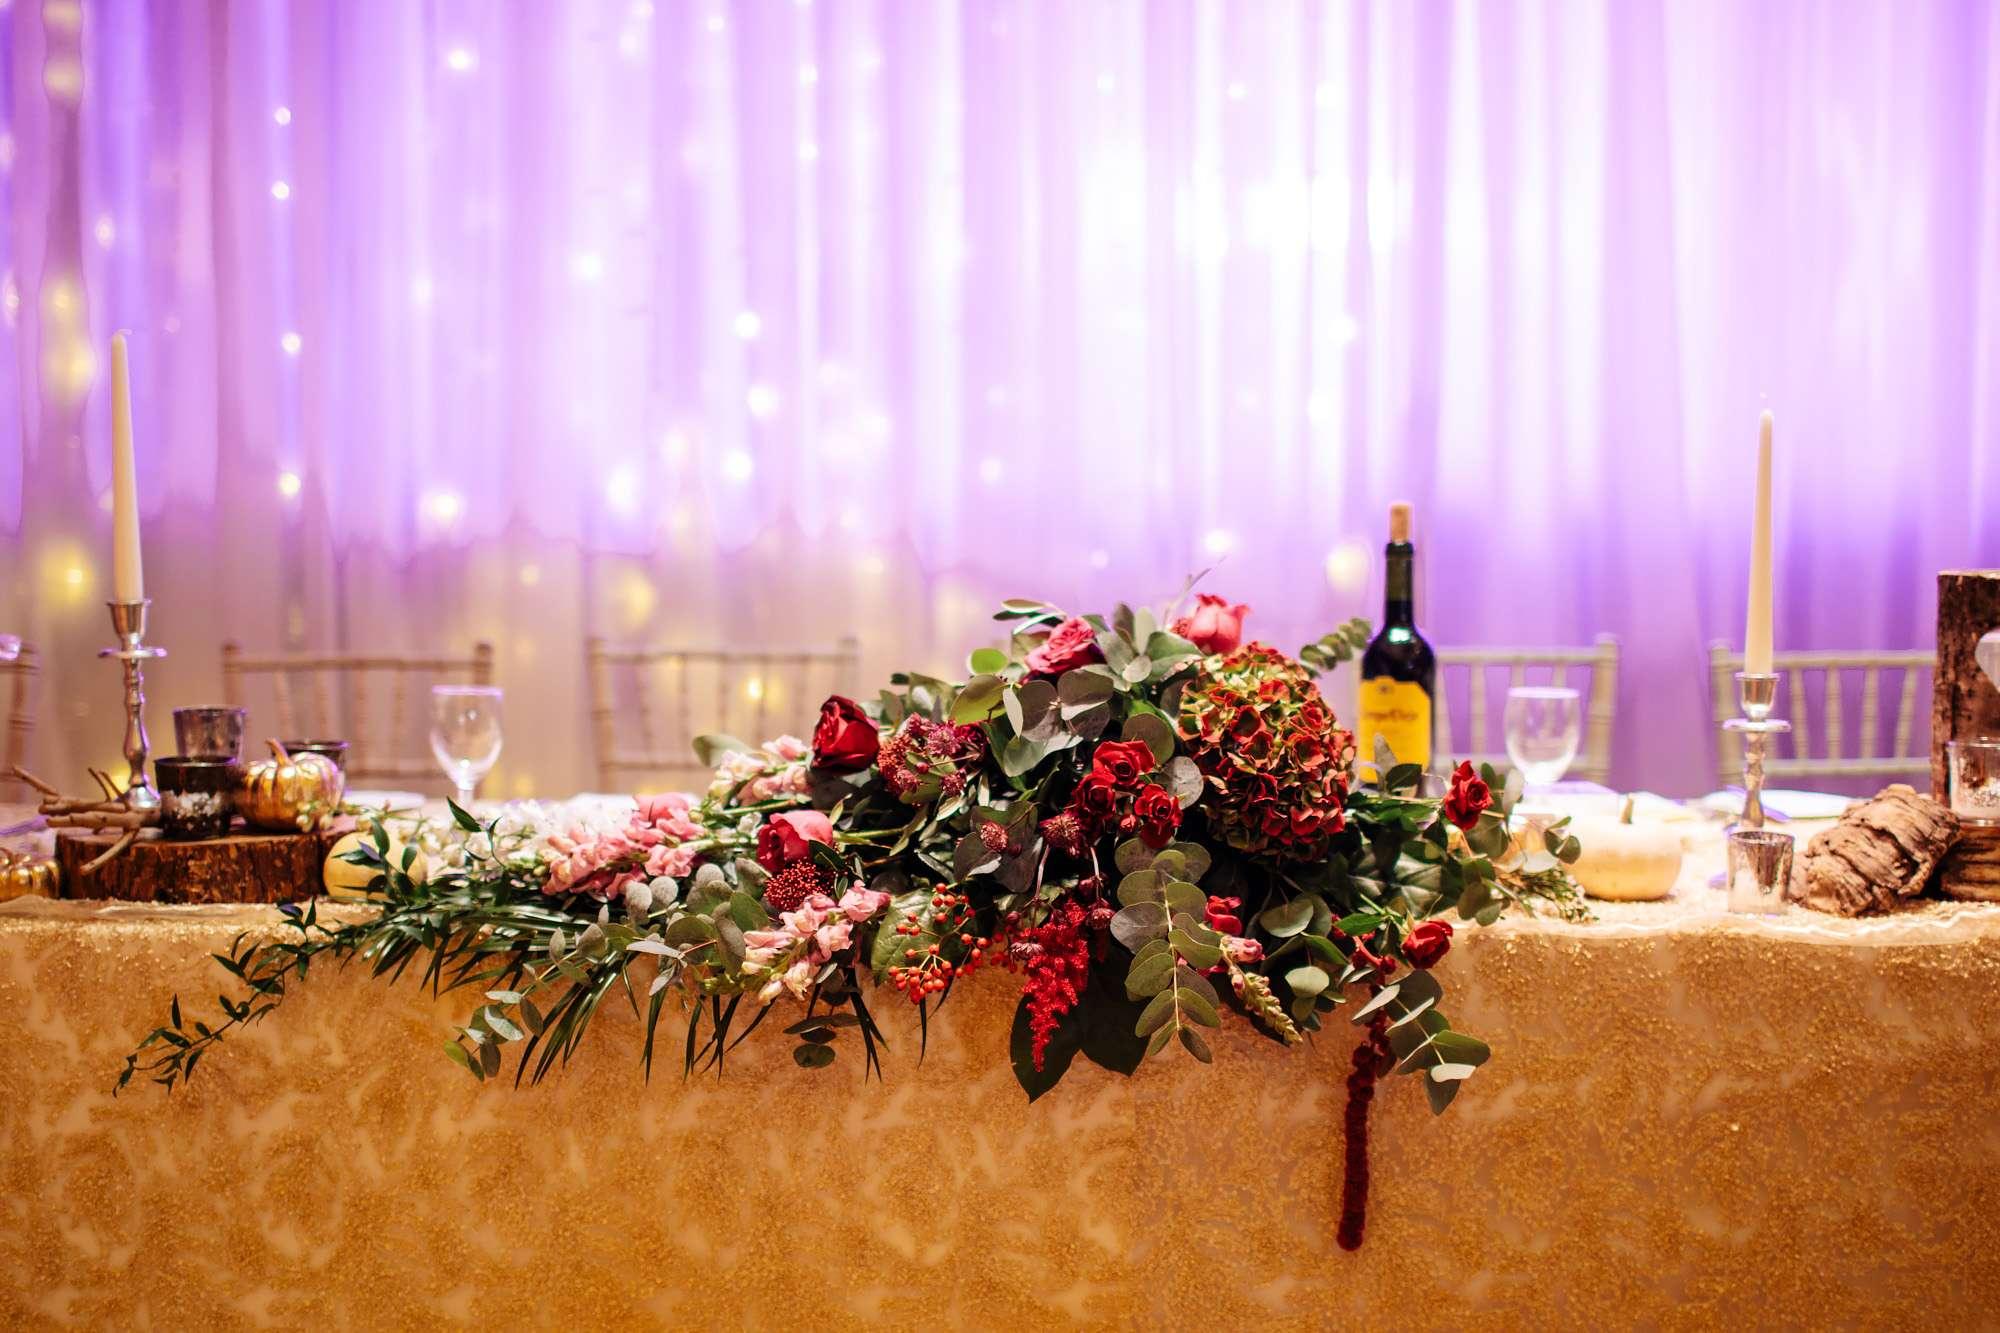 Top table flowers at a wedding